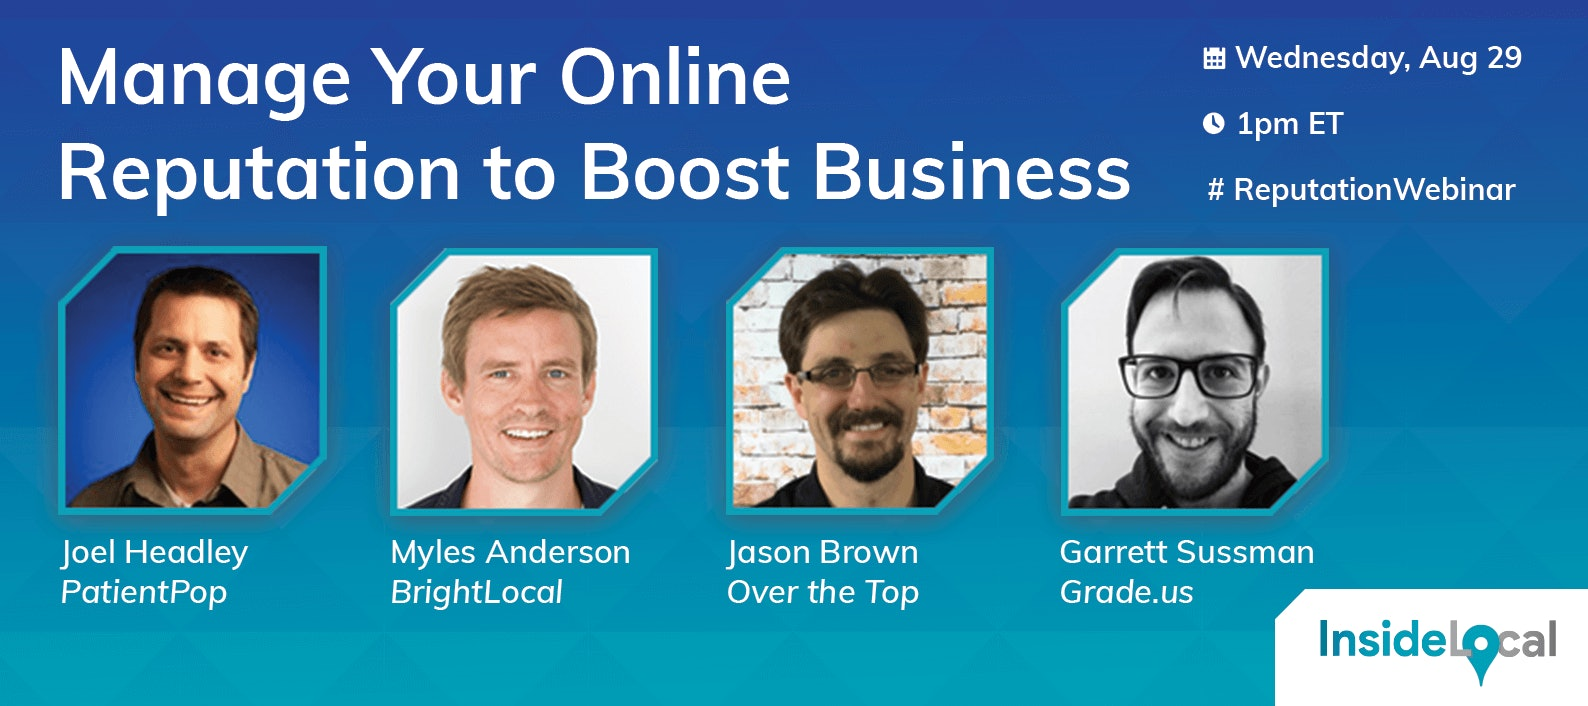 Manage Your Online Reputation to Boost Business